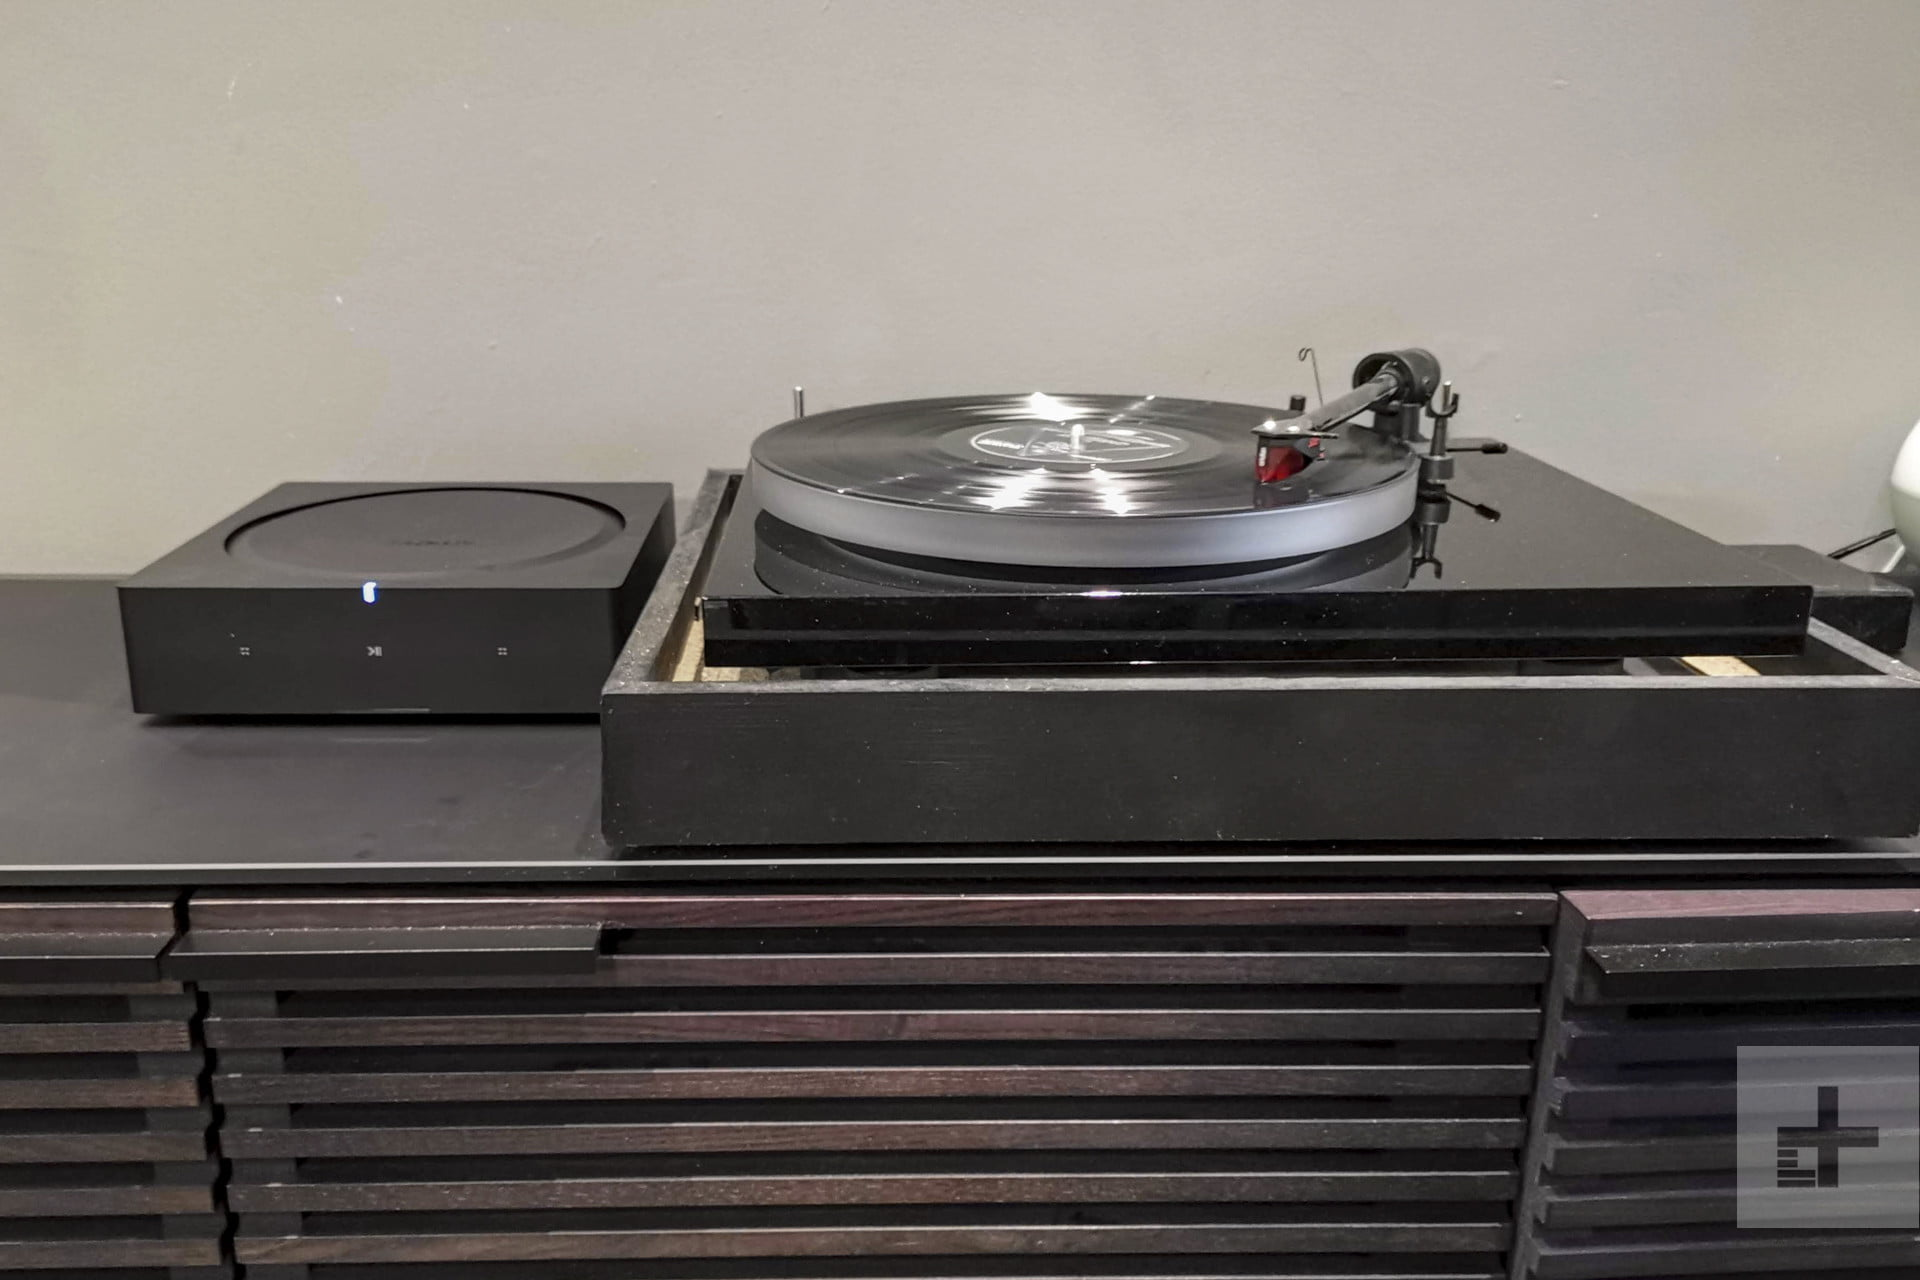 hook up turntable to sonos